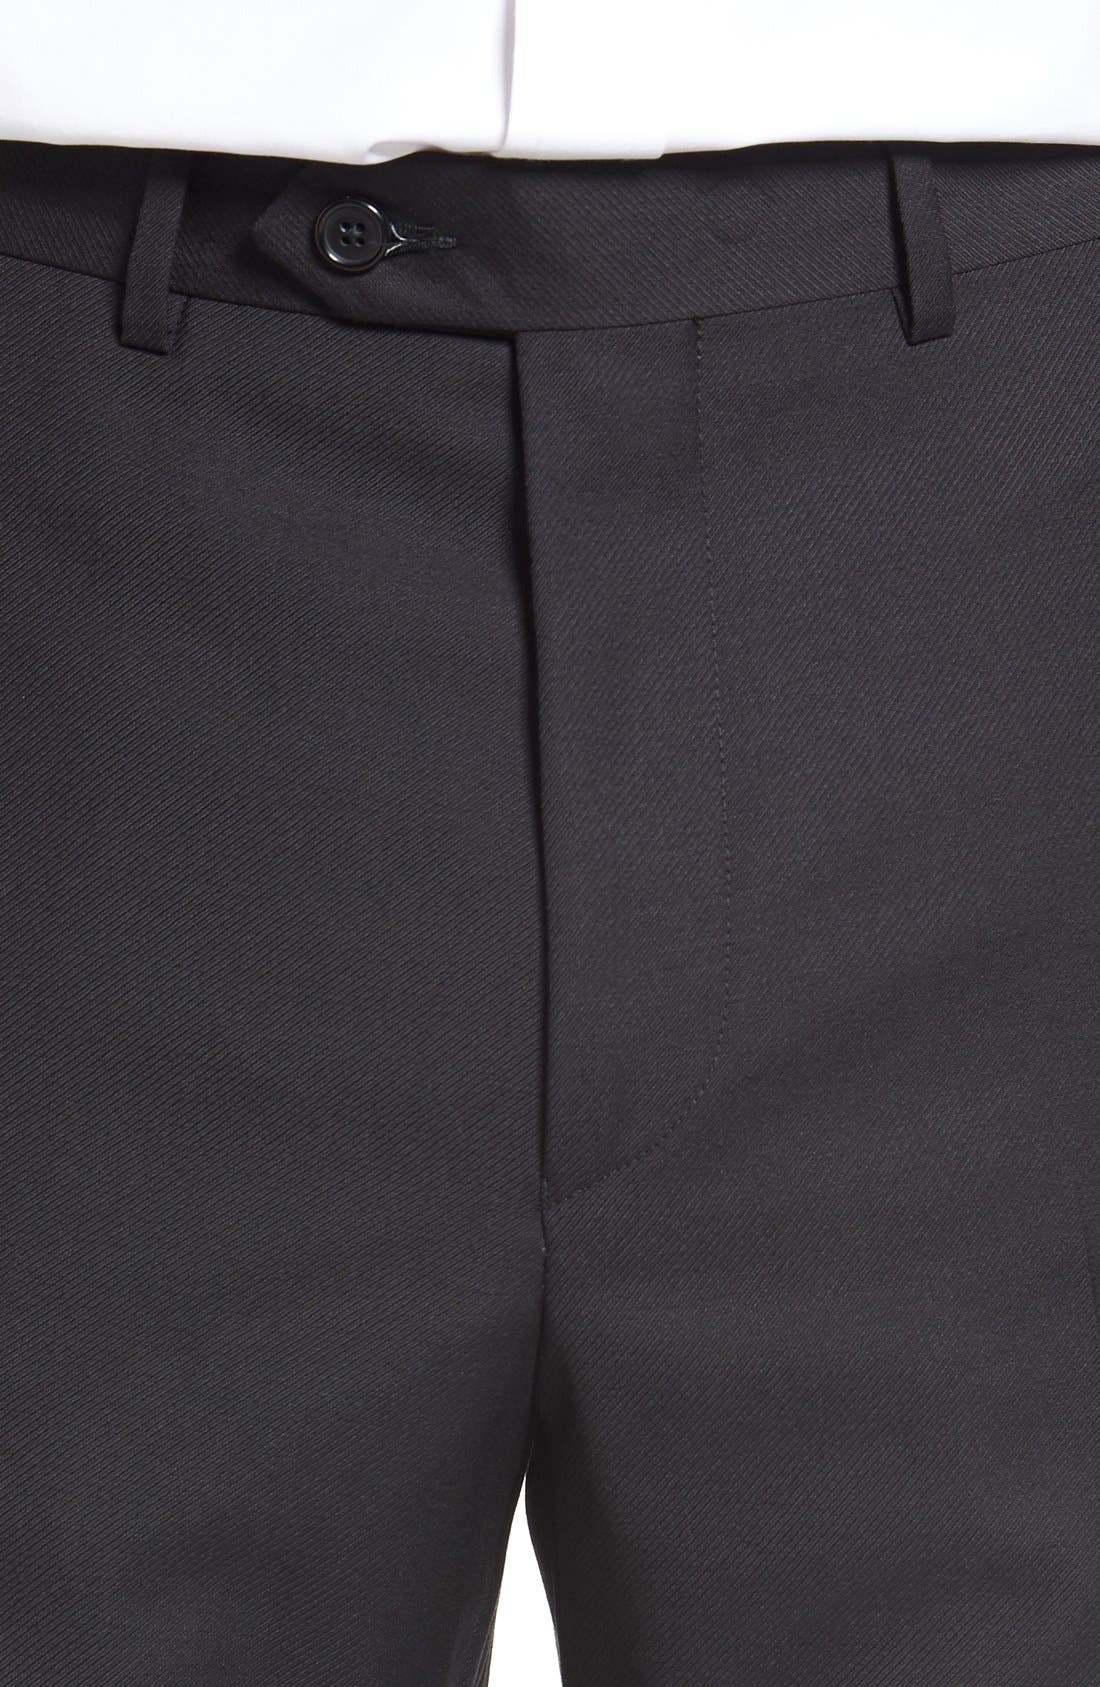 Flat Front Twill Wool Trousers,                             Alternate thumbnail 6, color,                             BLACK